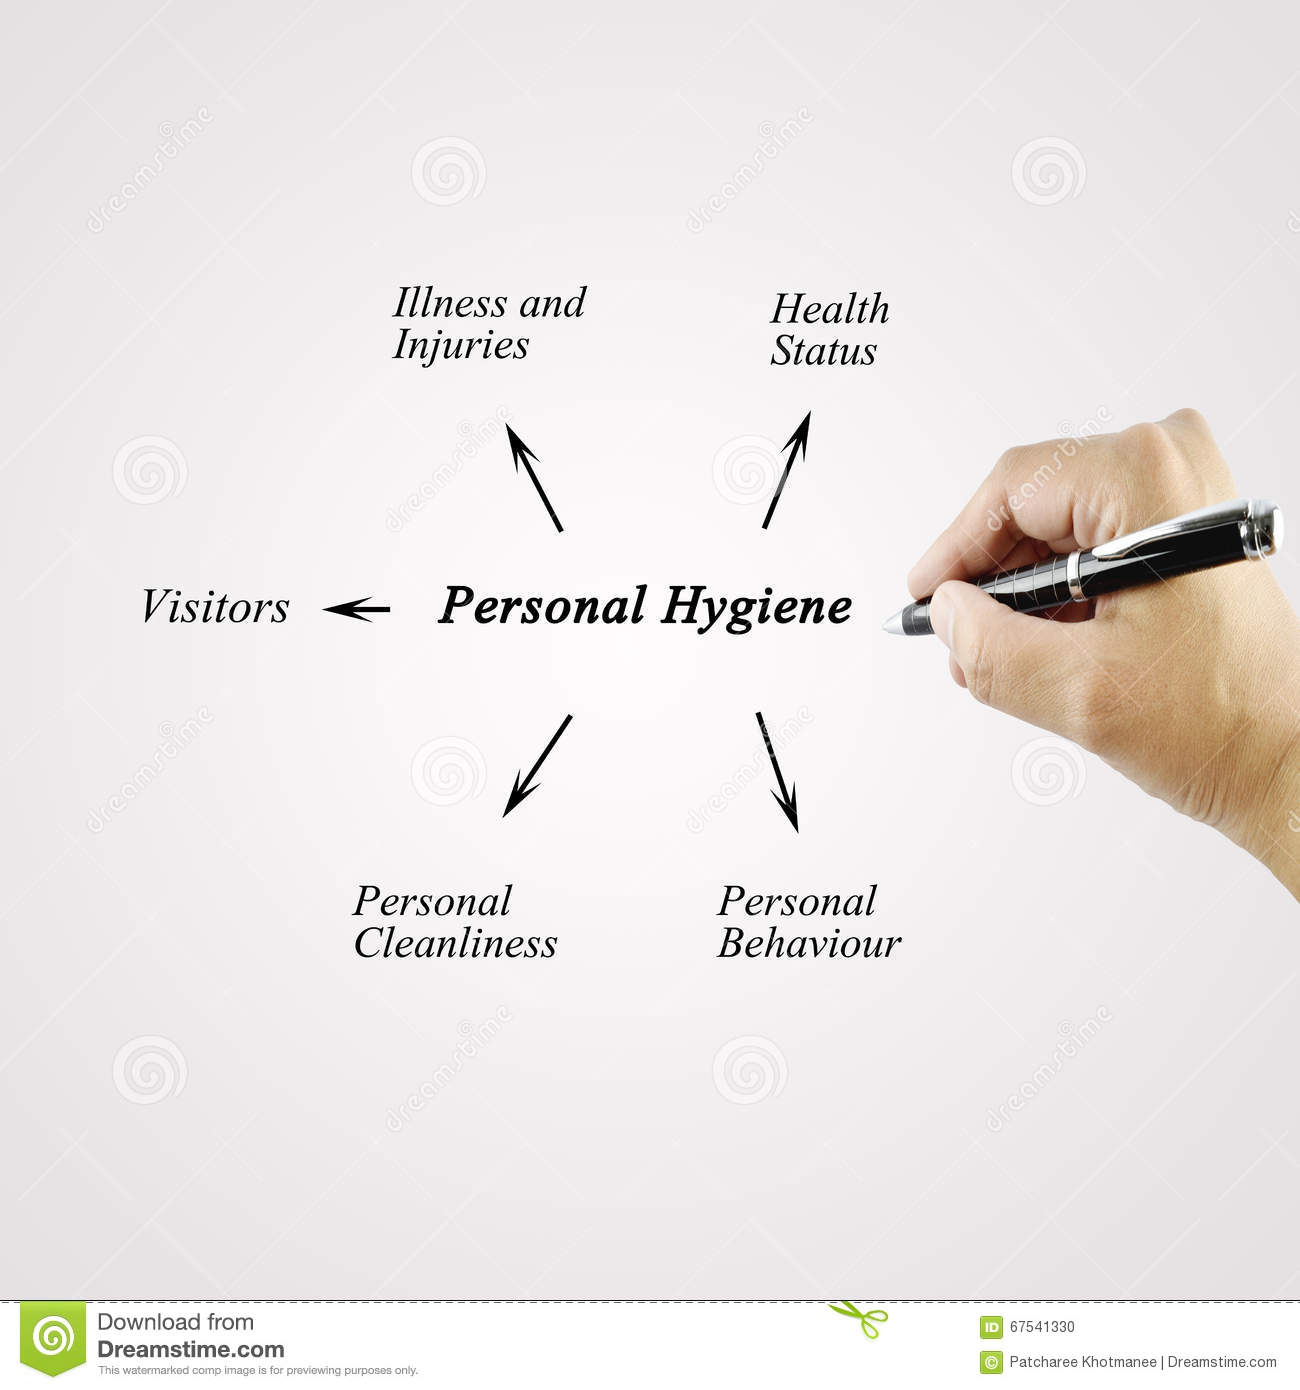 personal hygiene 5 essay Personal hygiene essay - if you want to find out how to make a top-notch dissertation, you are to study this receive a 100% authentic, plagiarism-free dissertation you could only imagine about in our custom writing help entrust your dissertation to professional scholars working in the service.